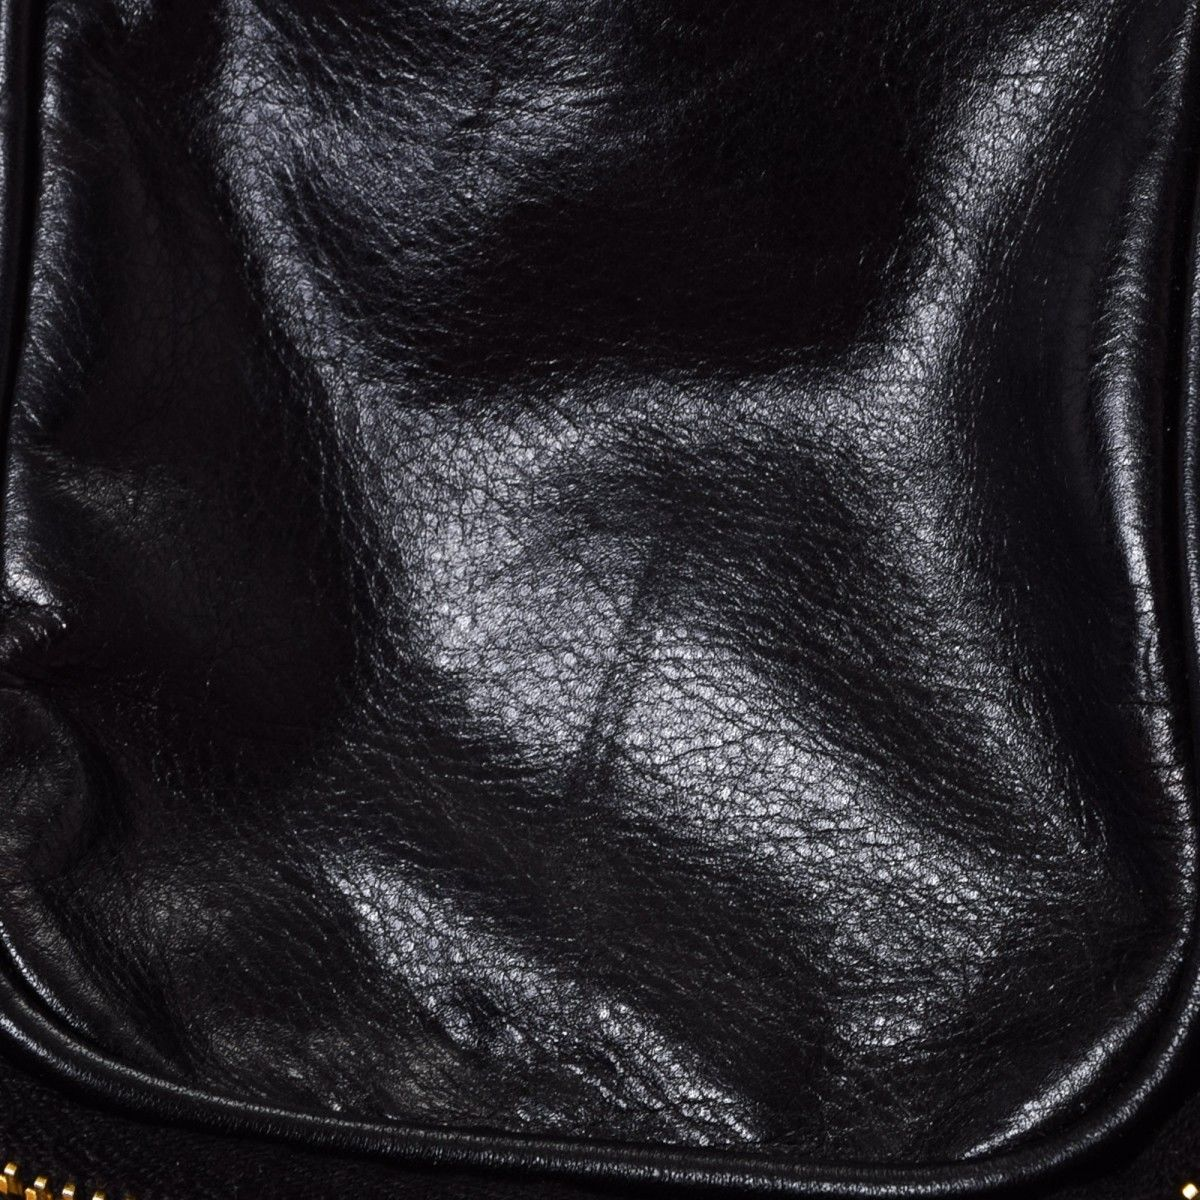 7844fa0c45f Leather Darwin Convertible Backpack. Free Shipping. LXRandCo guarantees  this is an authentic vintage Gucci Darwin Convertible backpack. Crafted in  leather ...